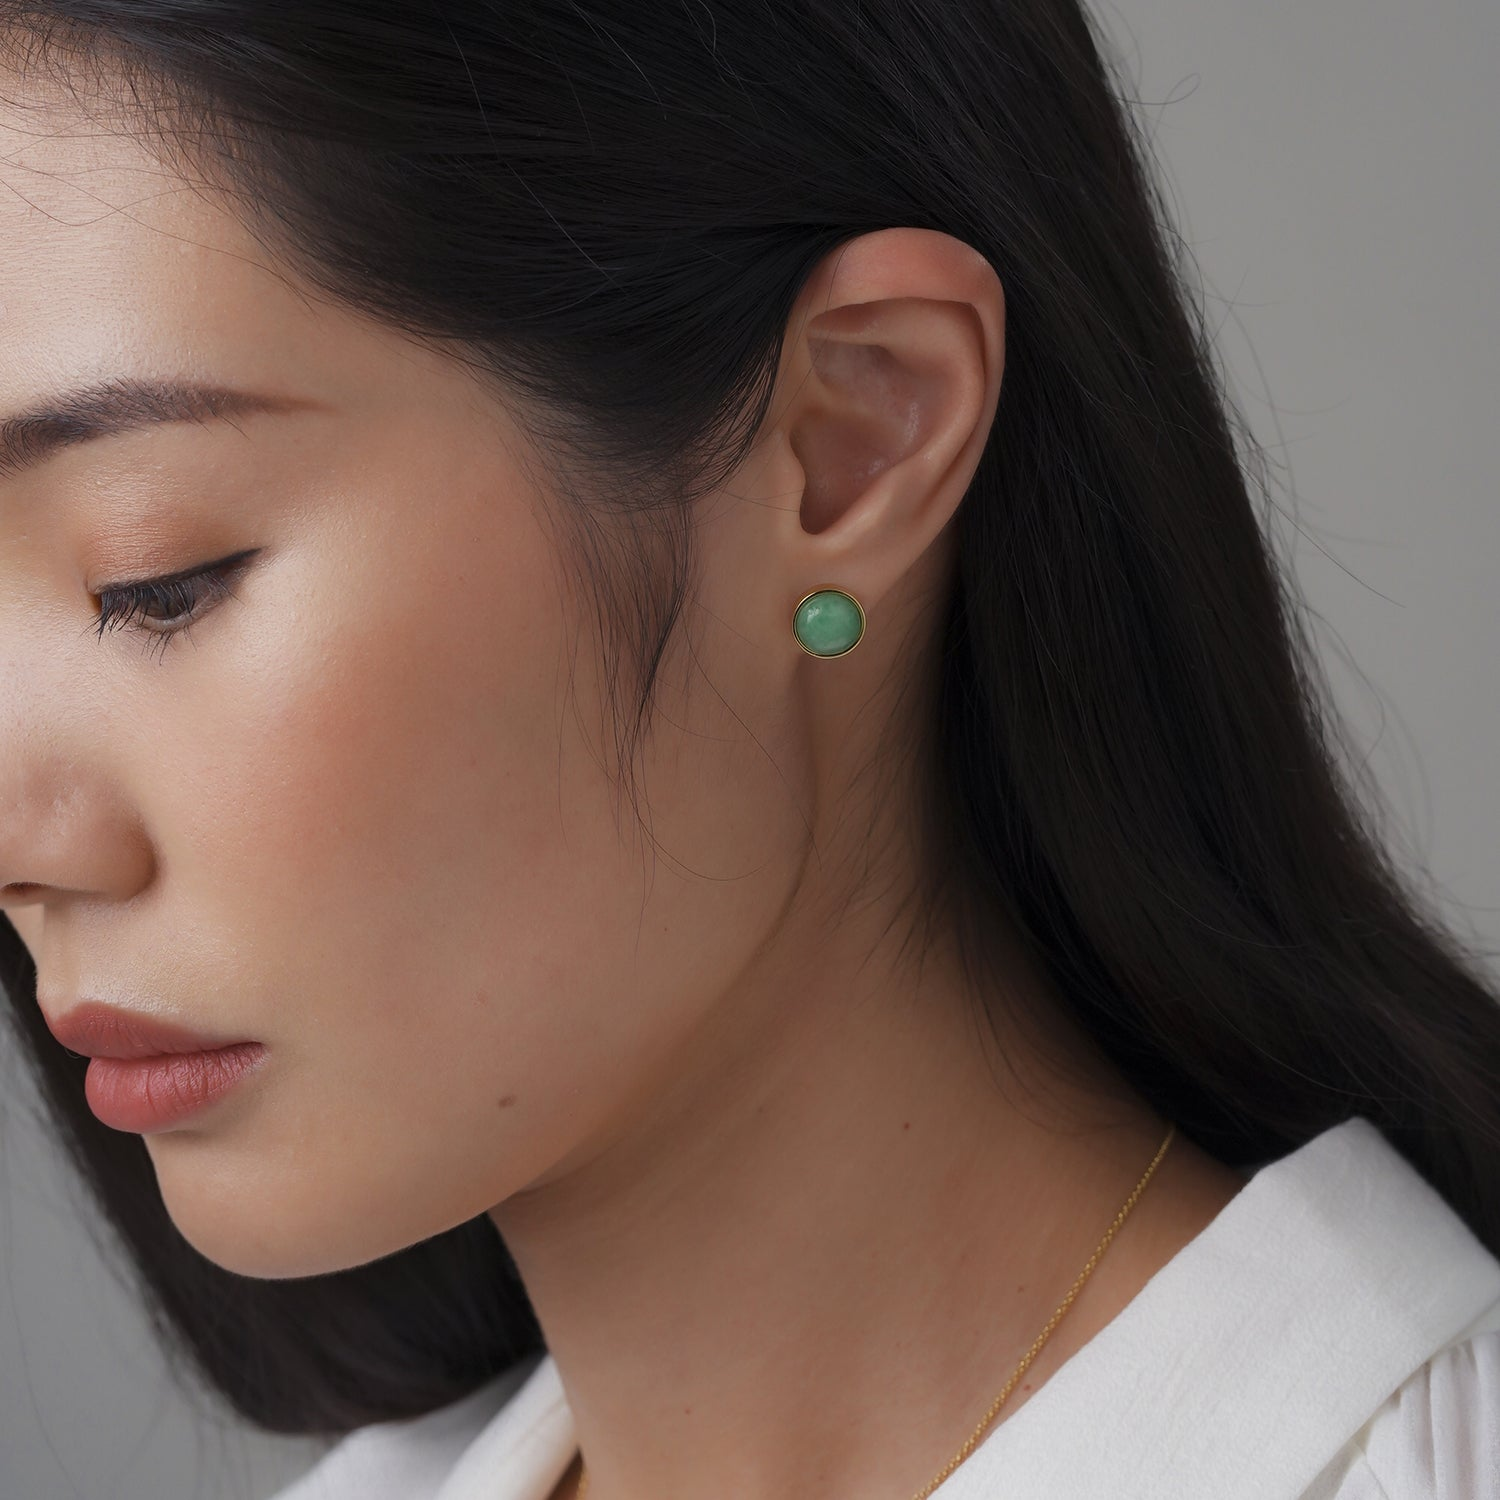 EDEN 悅 Earring Stud in Apple Green Jade